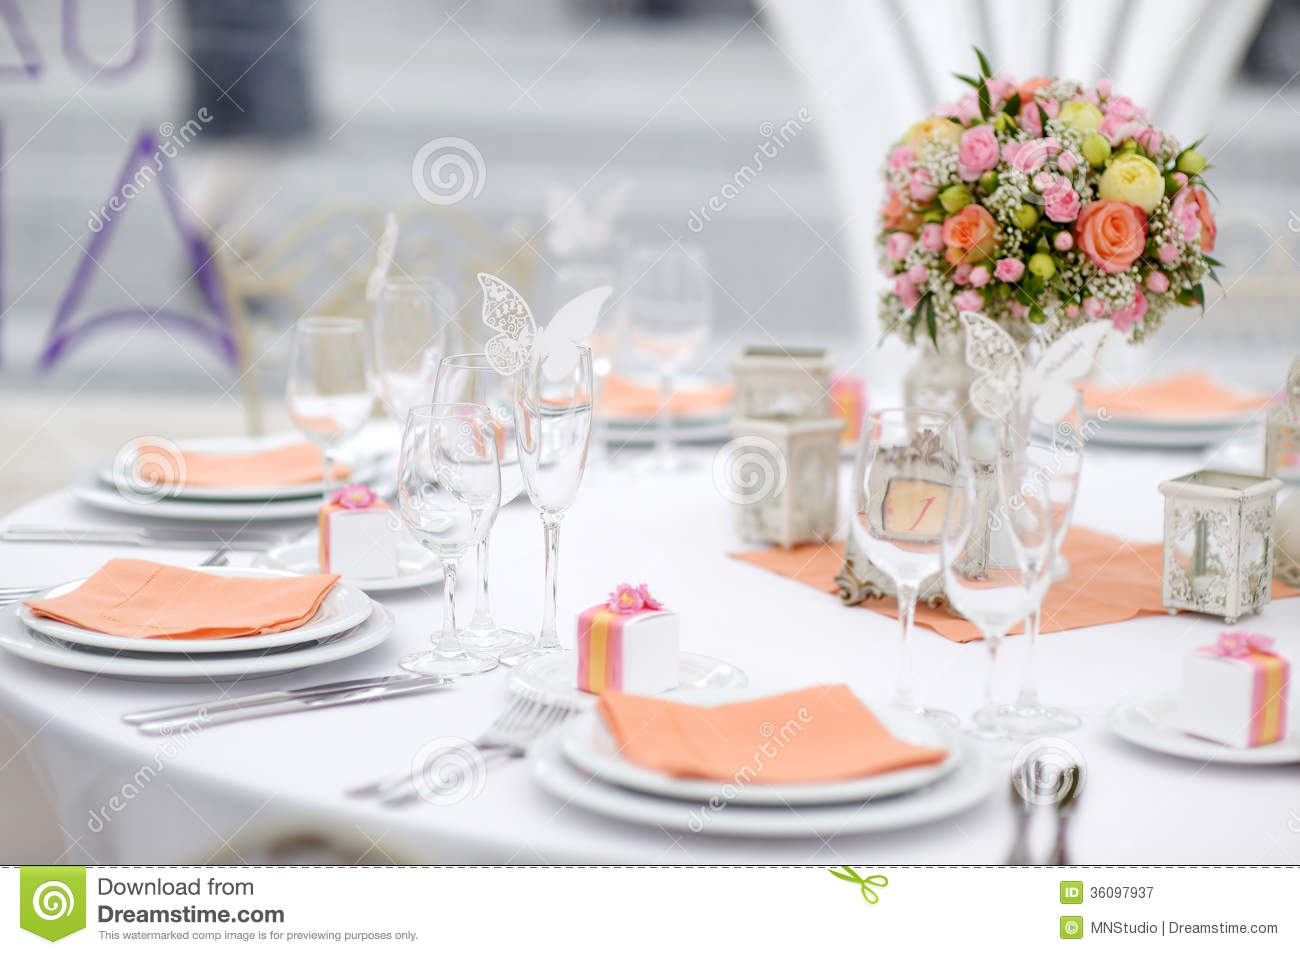 Table Set For An Event Party Or Wedding Reception Royalty